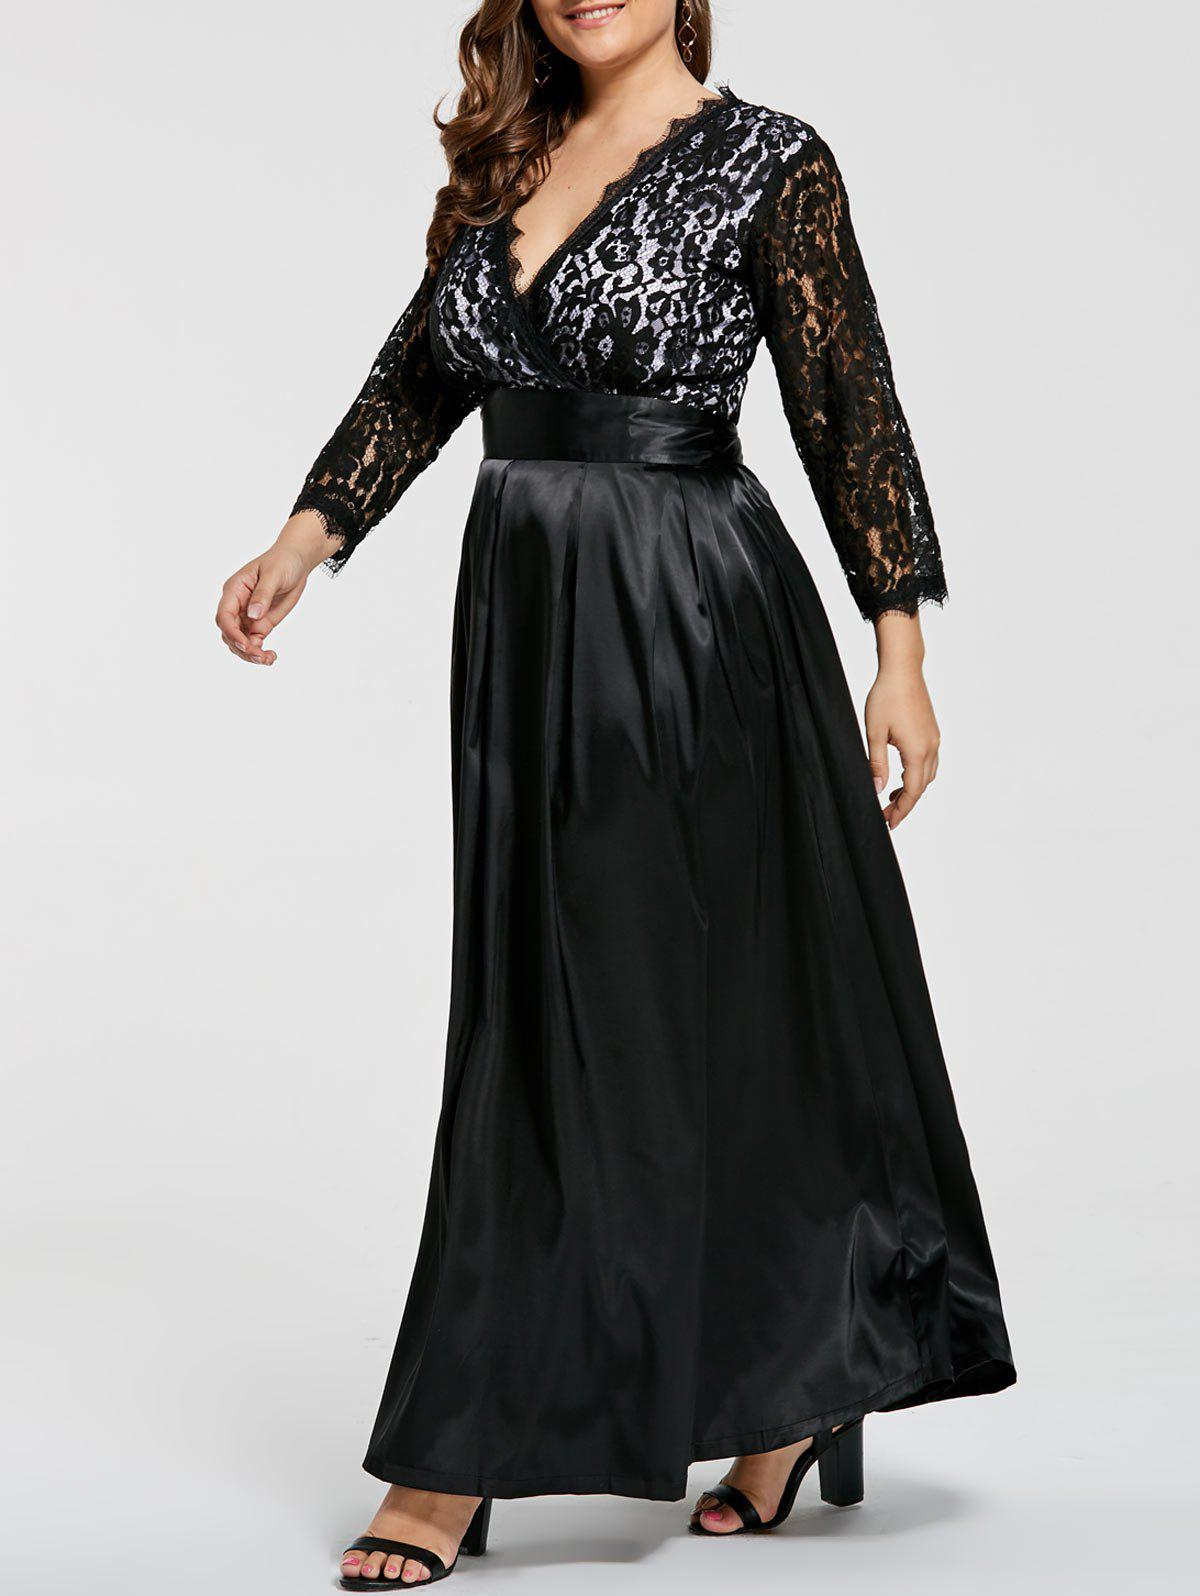 Lace Sleeve V Neck Plus Size Evening DressWOMEN<br><br>Size: 7XL; Color: BLACK; Style: Club; Material: Polyester; Silhouette: A-Line; Dresses Length: Ankle-Length; Neckline: V-Neck; Sleeve Length: 3/4 Length Sleeves; Waist: High Waisted; Embellishment: Lace; Pattern Type: Solid Color; With Belt: No; Season: Fall; Weight: 0.5800kg; Package Contents: 1 x Dress;